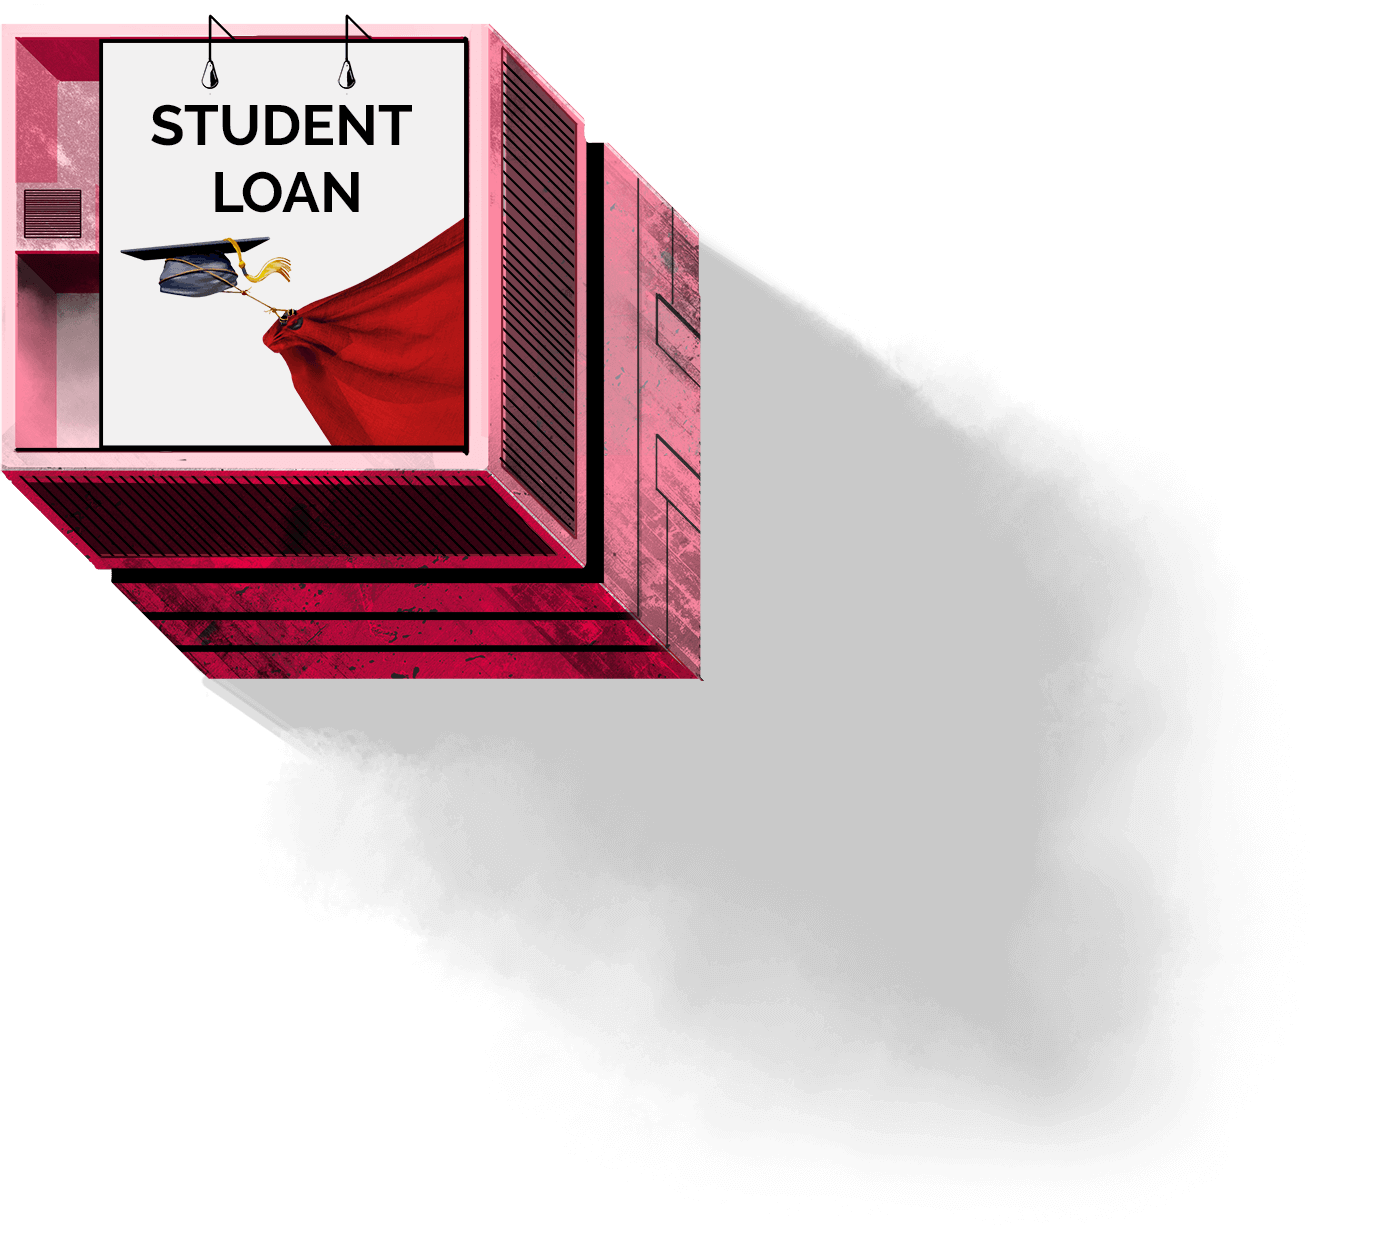 Student loan facility